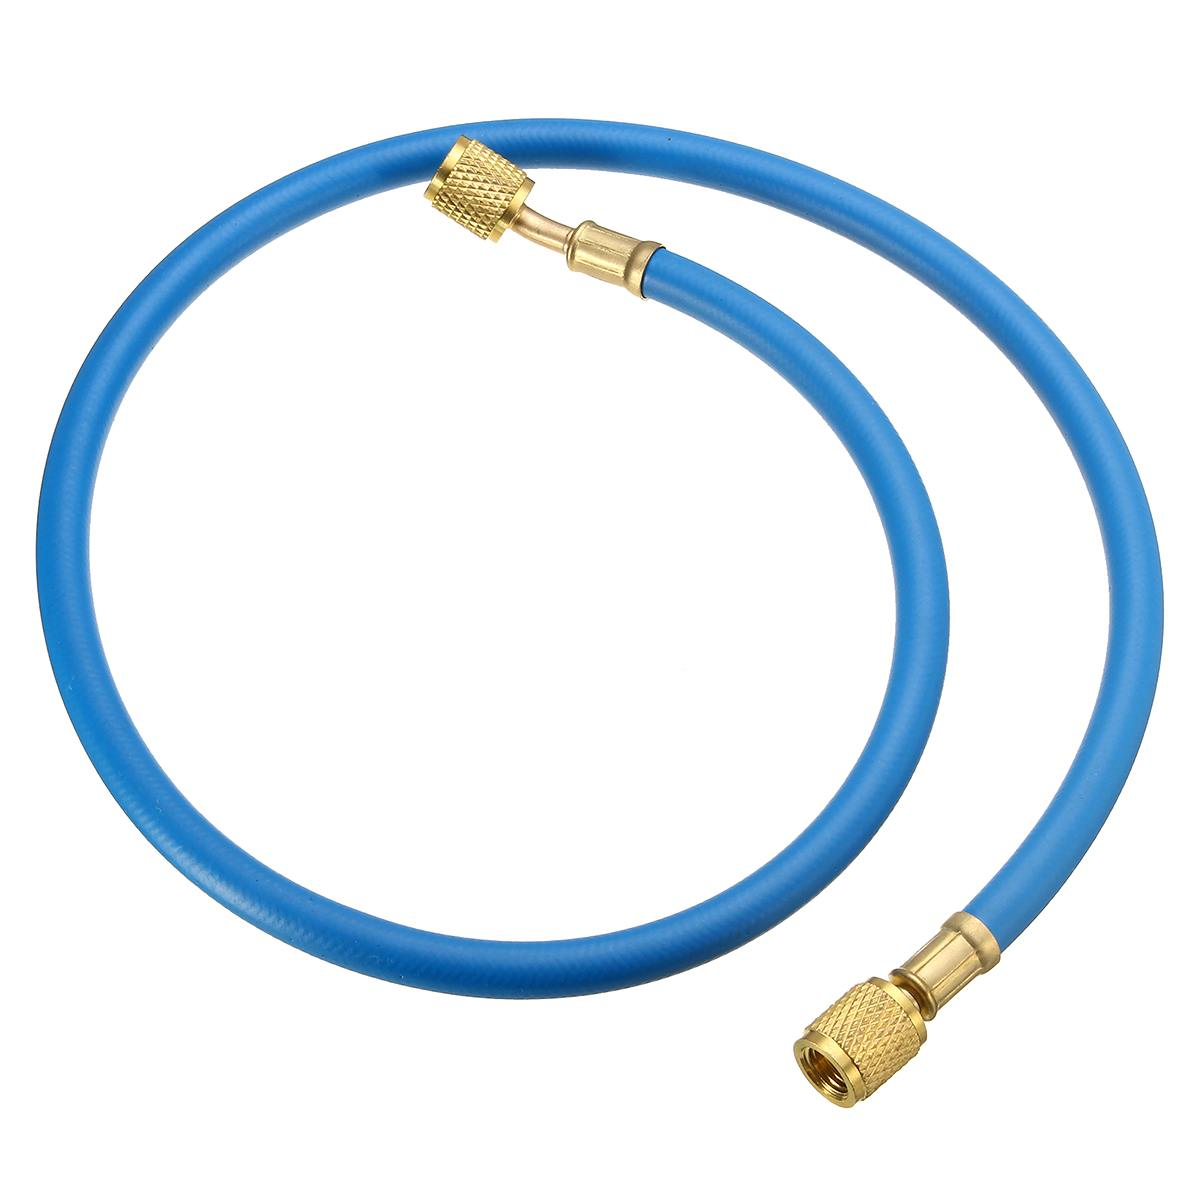 Car Charging Hose 90CM R134A Refrigerant Measuring Recharge Adapter Coolant Pipe 15MM for R410a <font><b>R22</b></font> R12 <font><b>Air</b></font> <font><b>Conditioner</b></font> 1/4